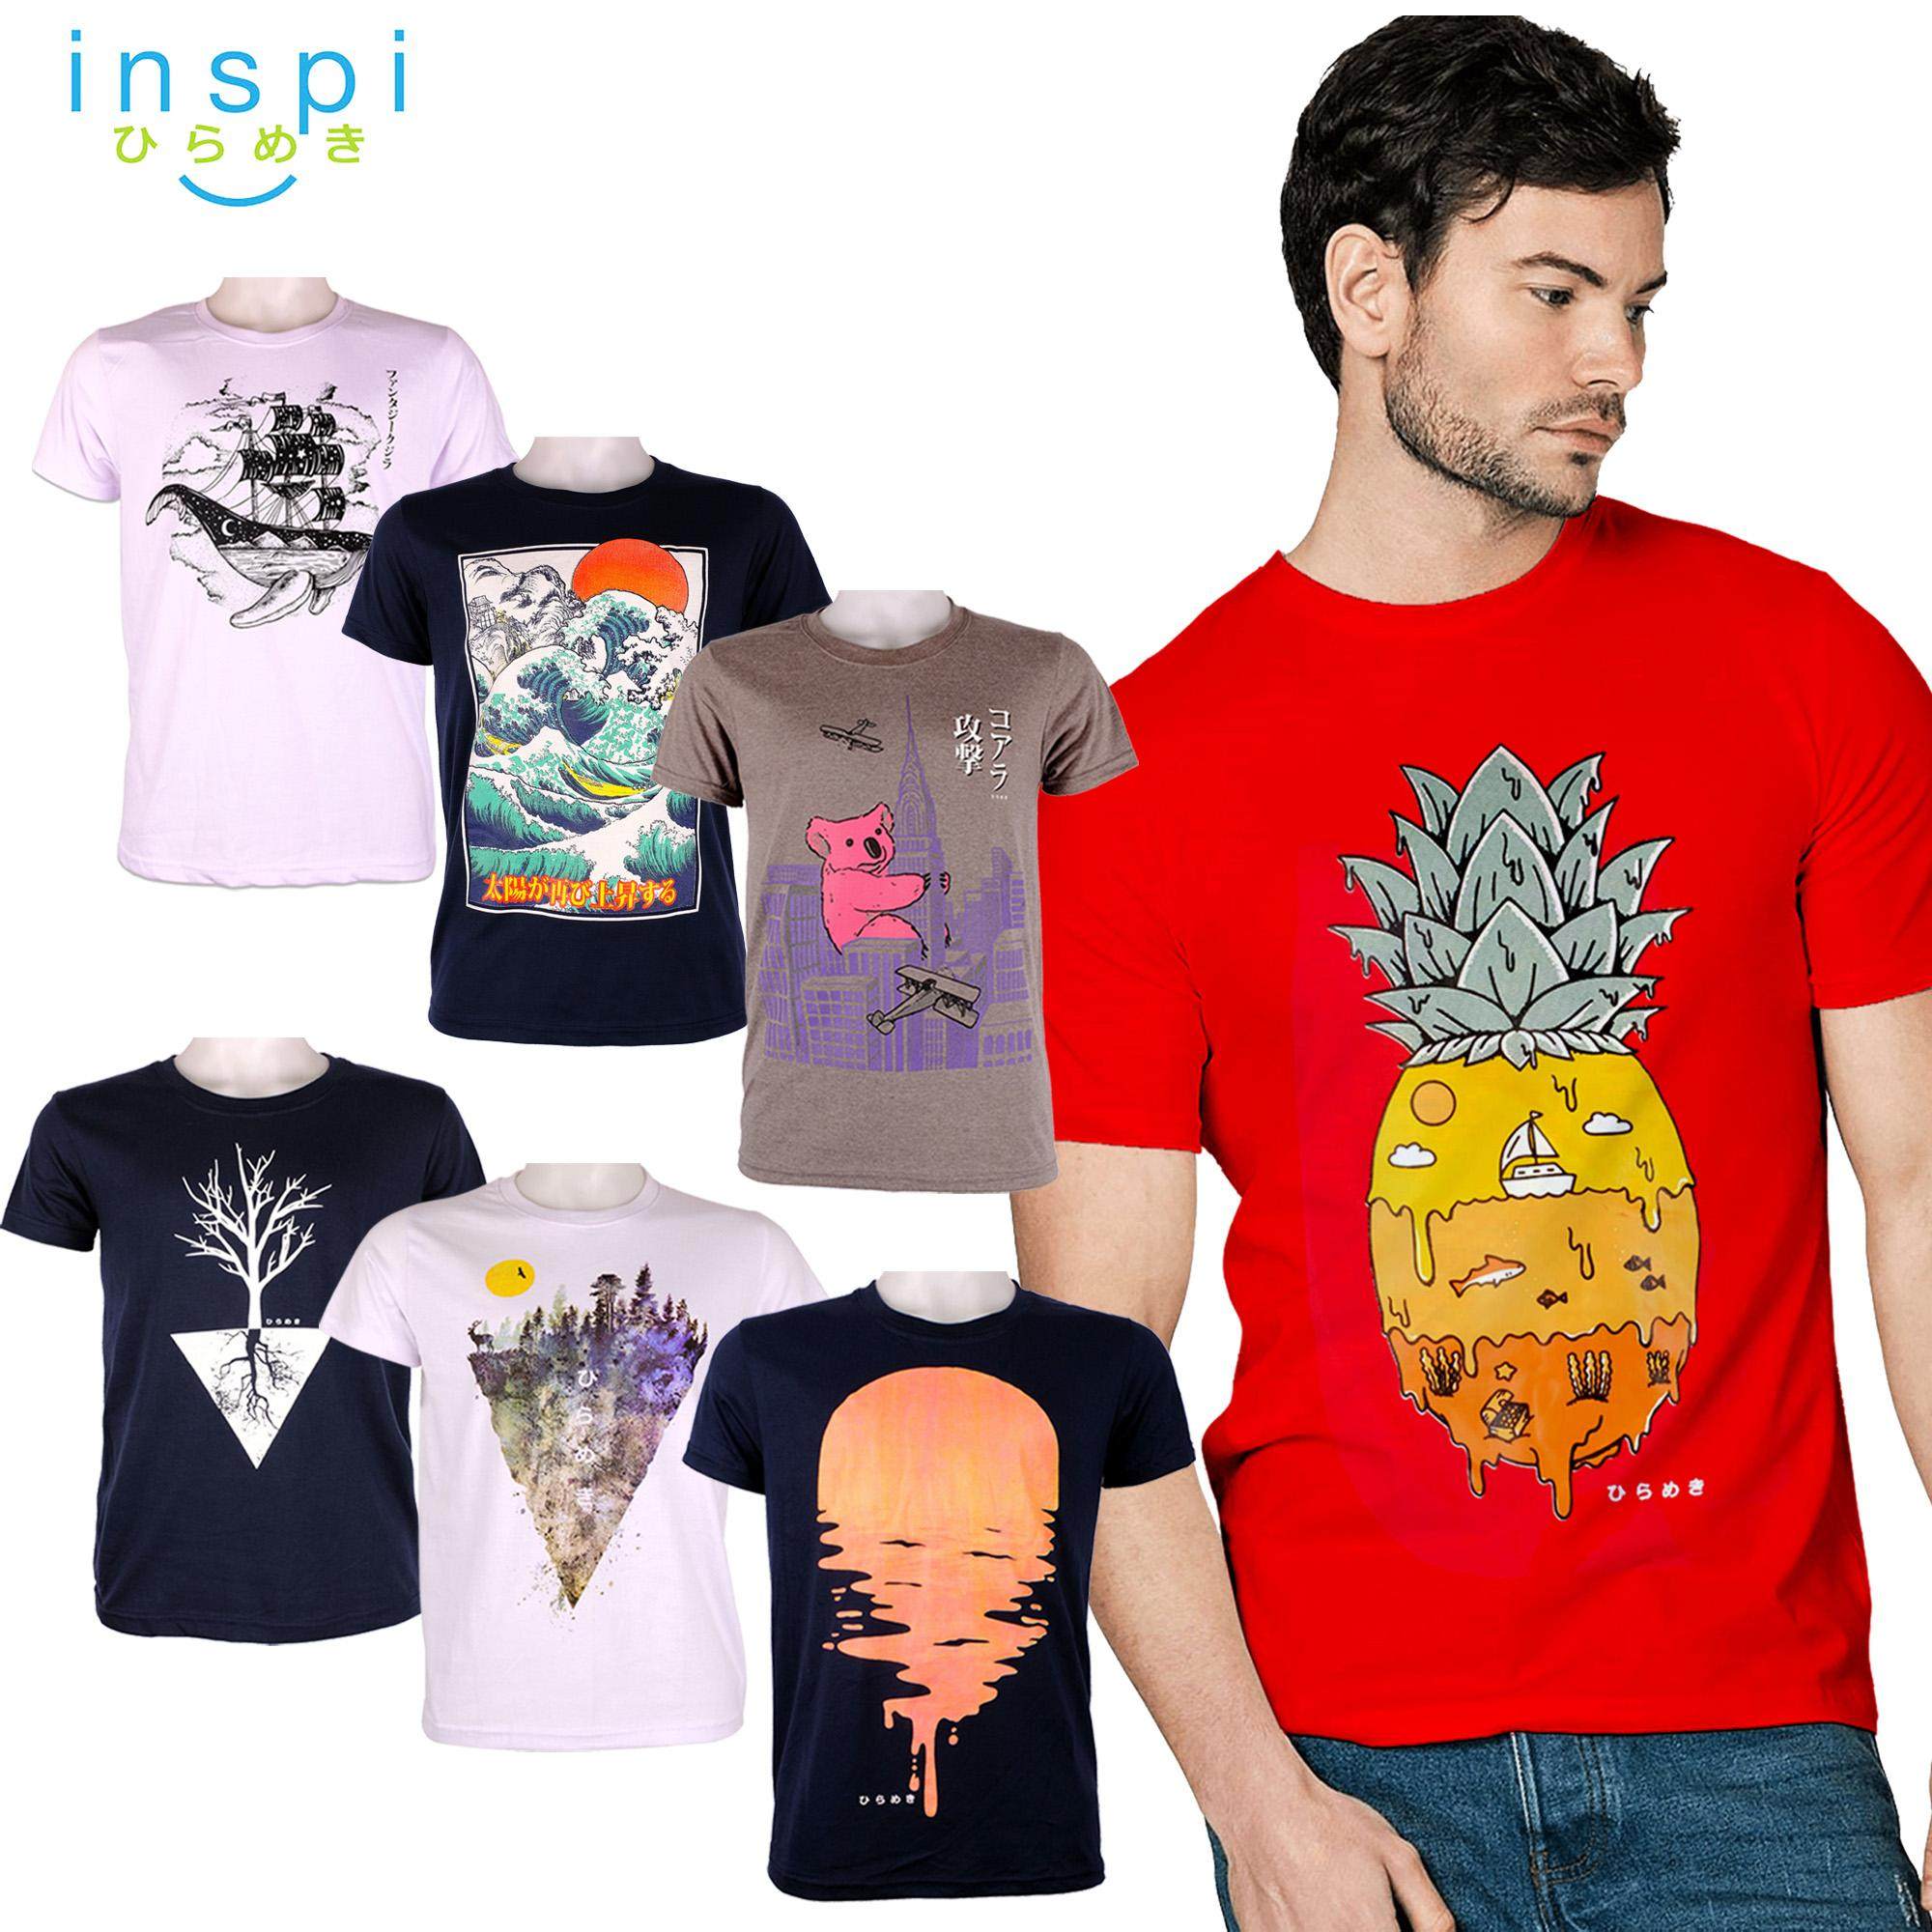 f9e1813d546c INSPI Tees Nature Collection tshirt printed graphic tee Mens t shirt shirts  for men tshirts sale